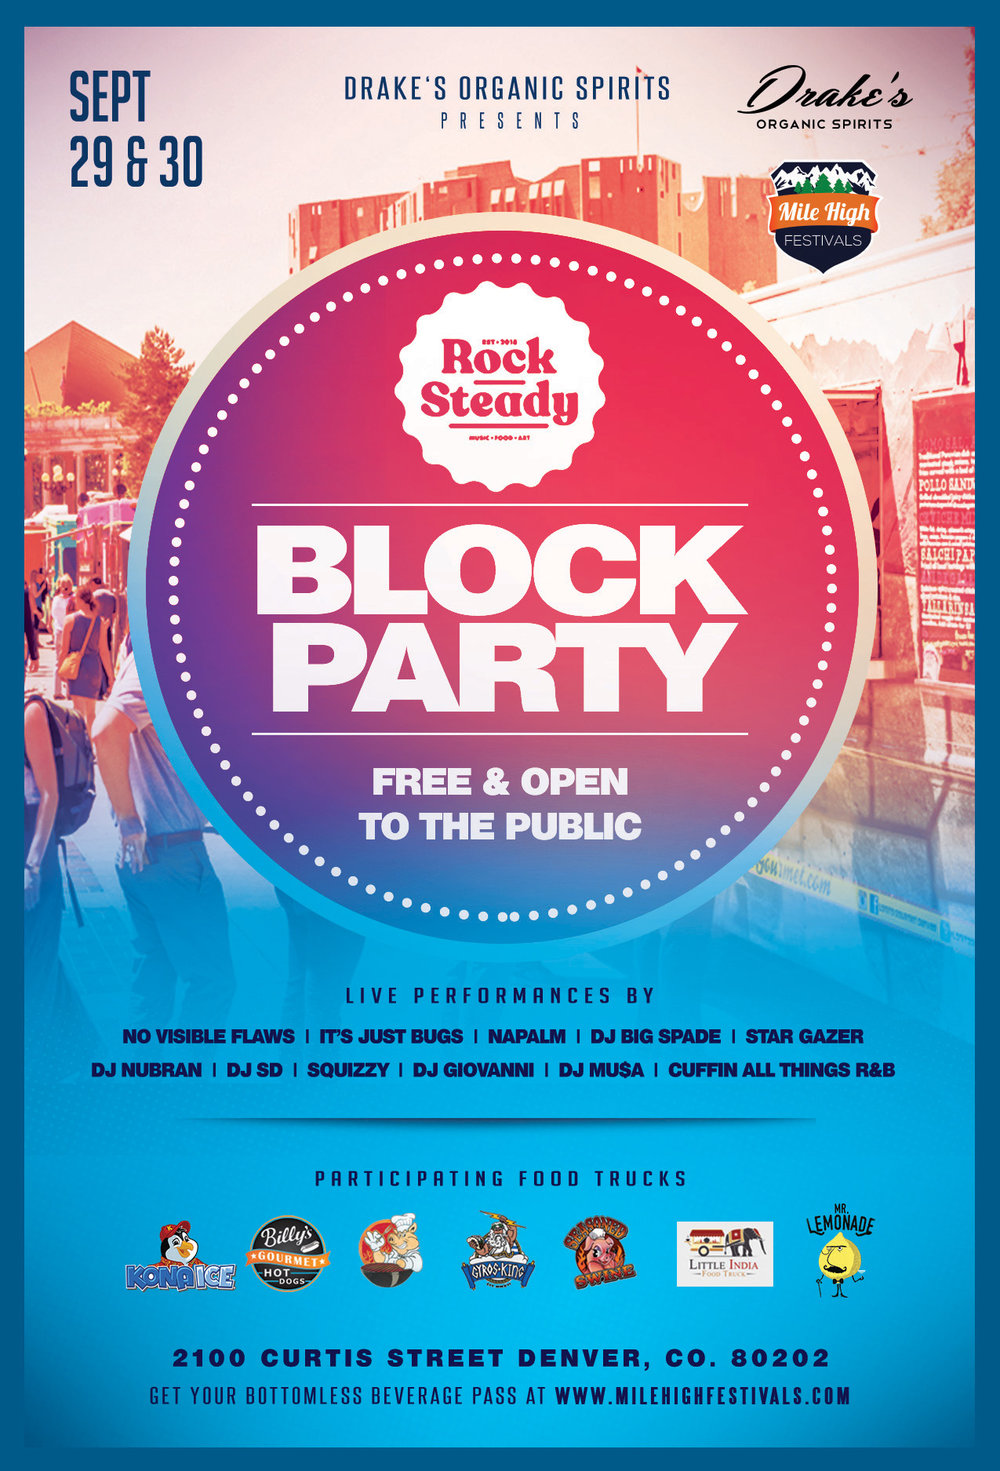 Win free drinks at the Block Party from Drake's Organic Spirits! - WIN